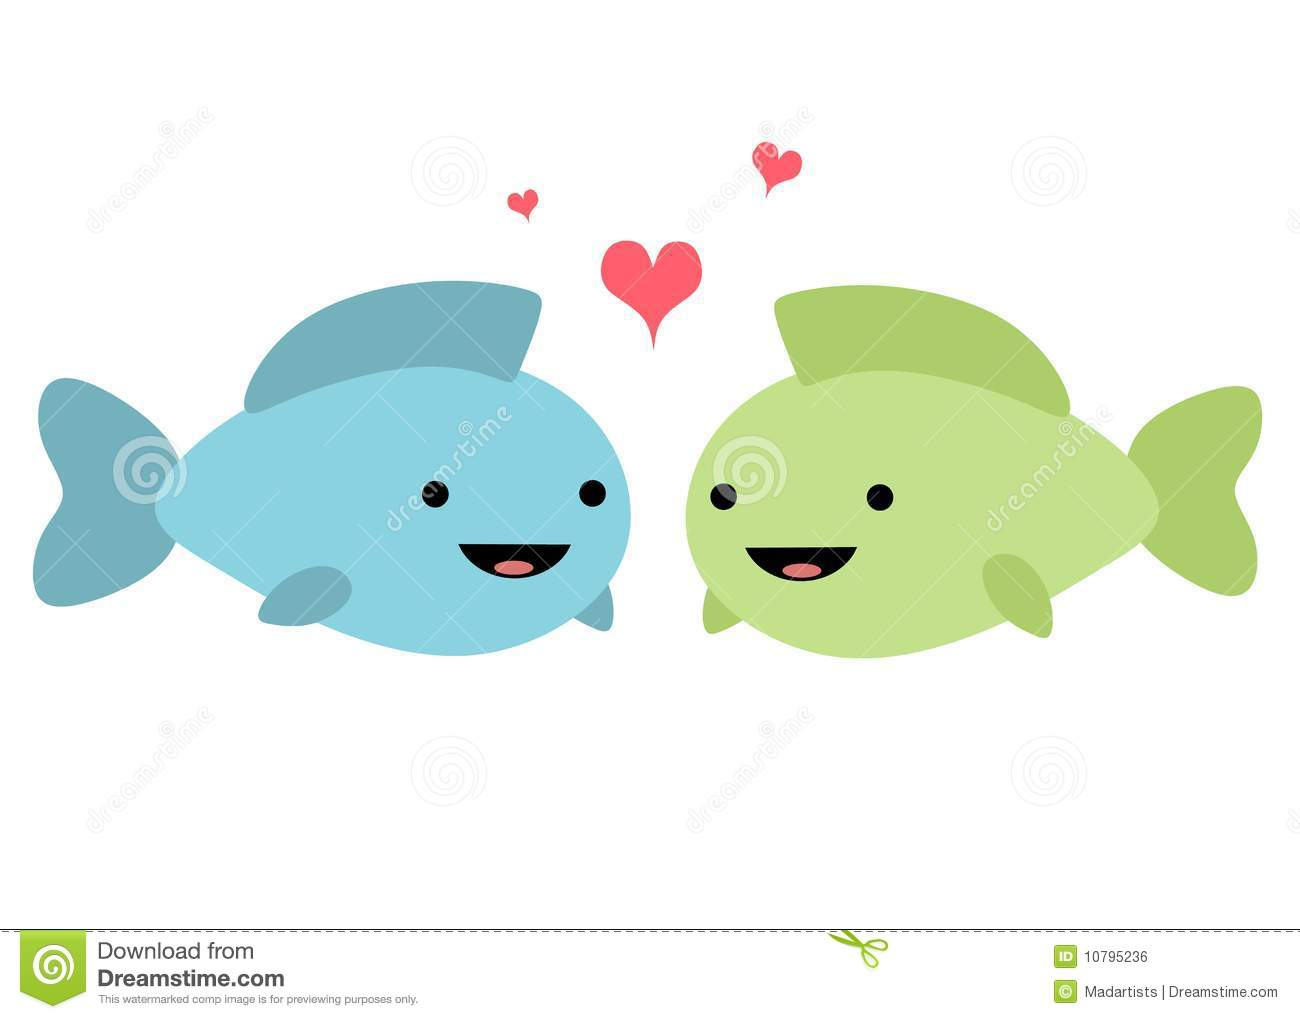 Fish In Love Illustration Royalty Free Stock Image - Image: 10795236